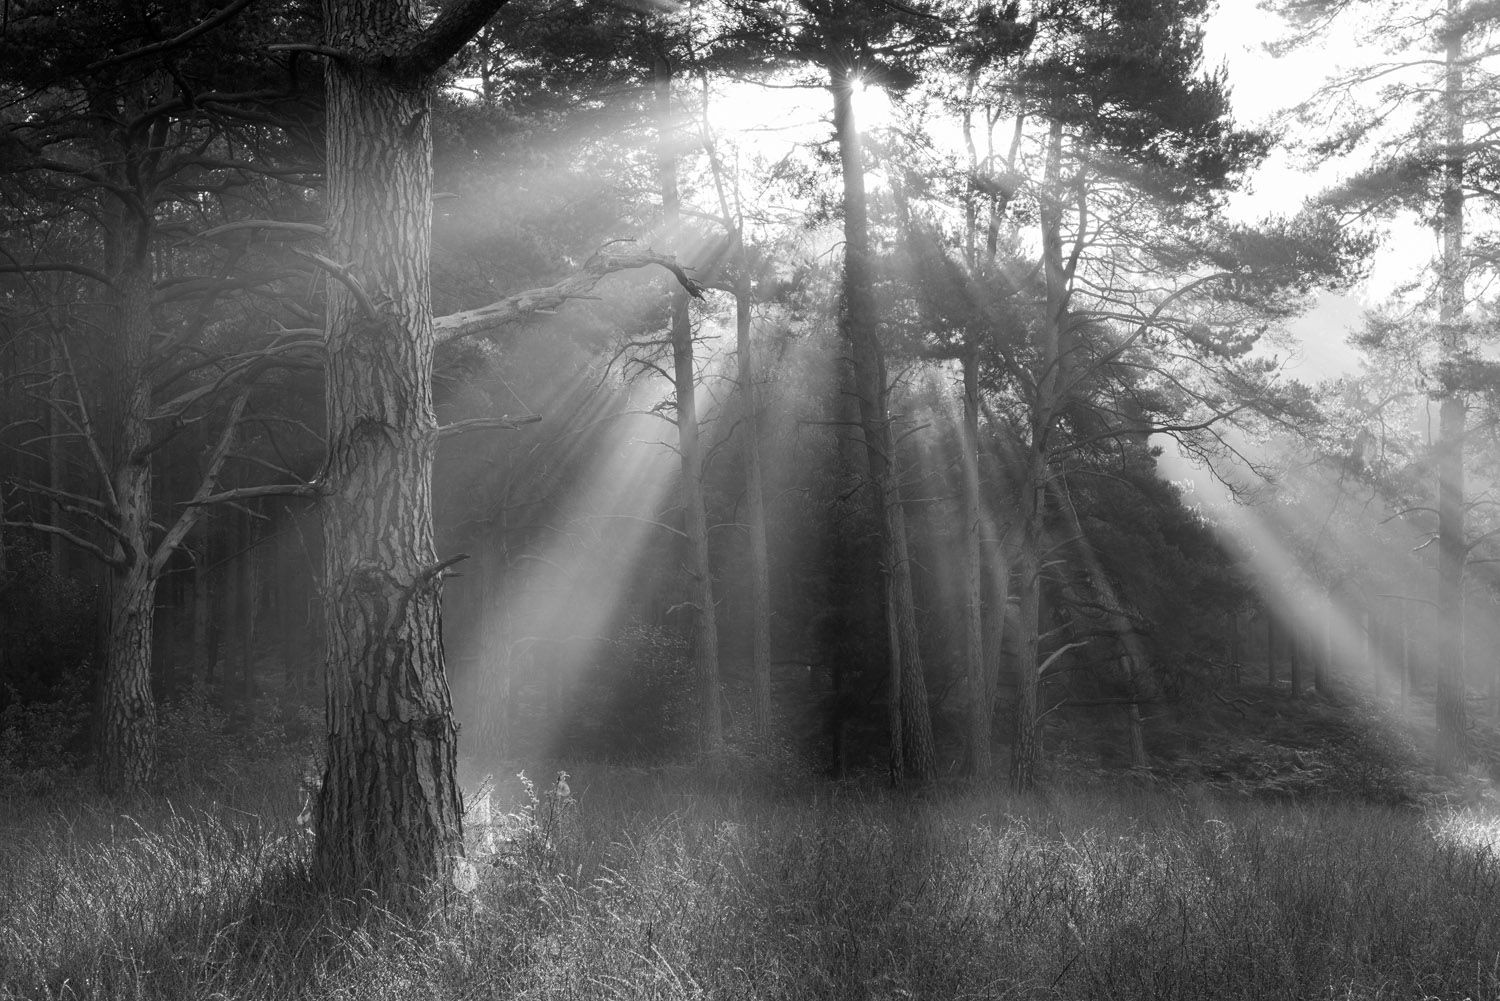 Morning sun breaking through Scots pine forest, Ashdown Forest, Sussex Weald, England